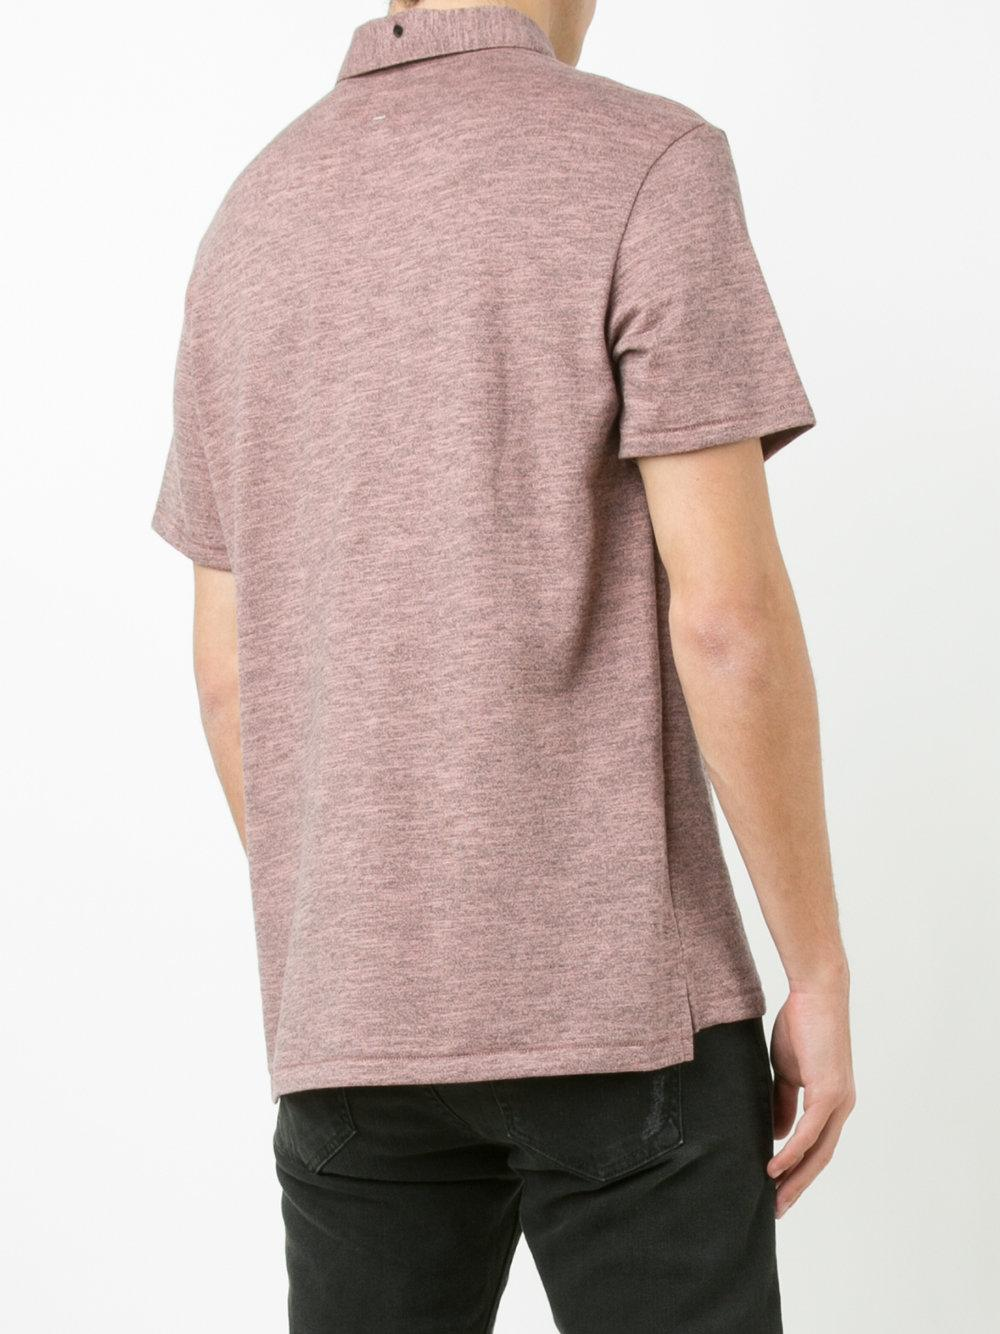 Rag Bone Standard Issue Polo Shirt In Red For Men Lyst